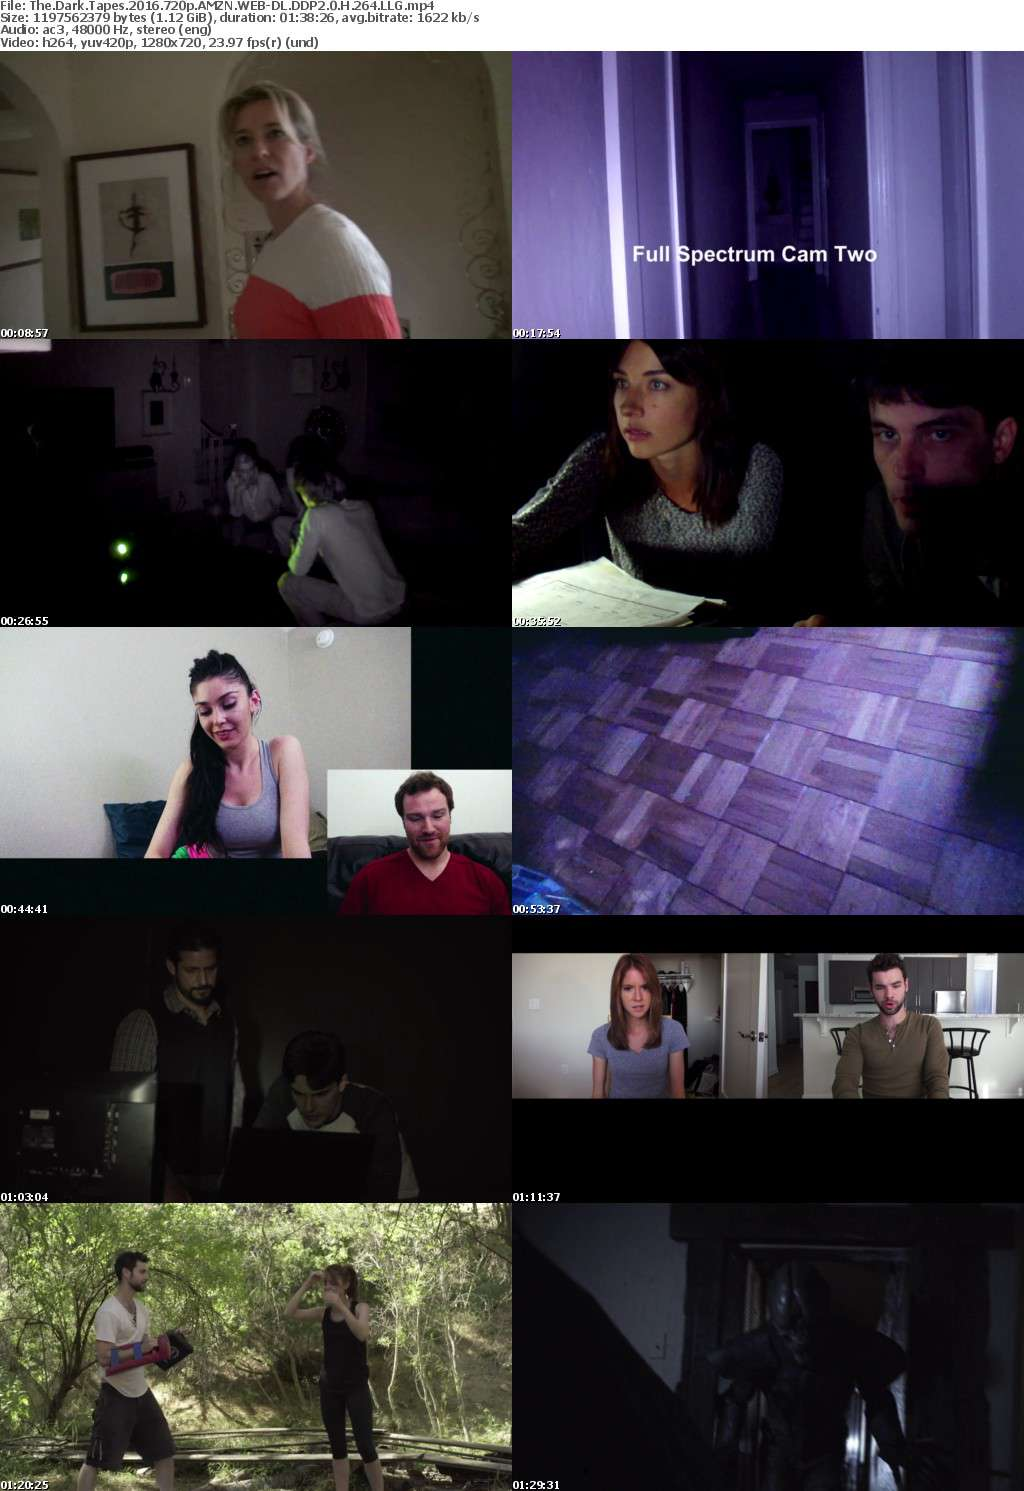 The Dark Tapes 2016 720p AMZN WEB-DL DDP2 0 H 264 LLG